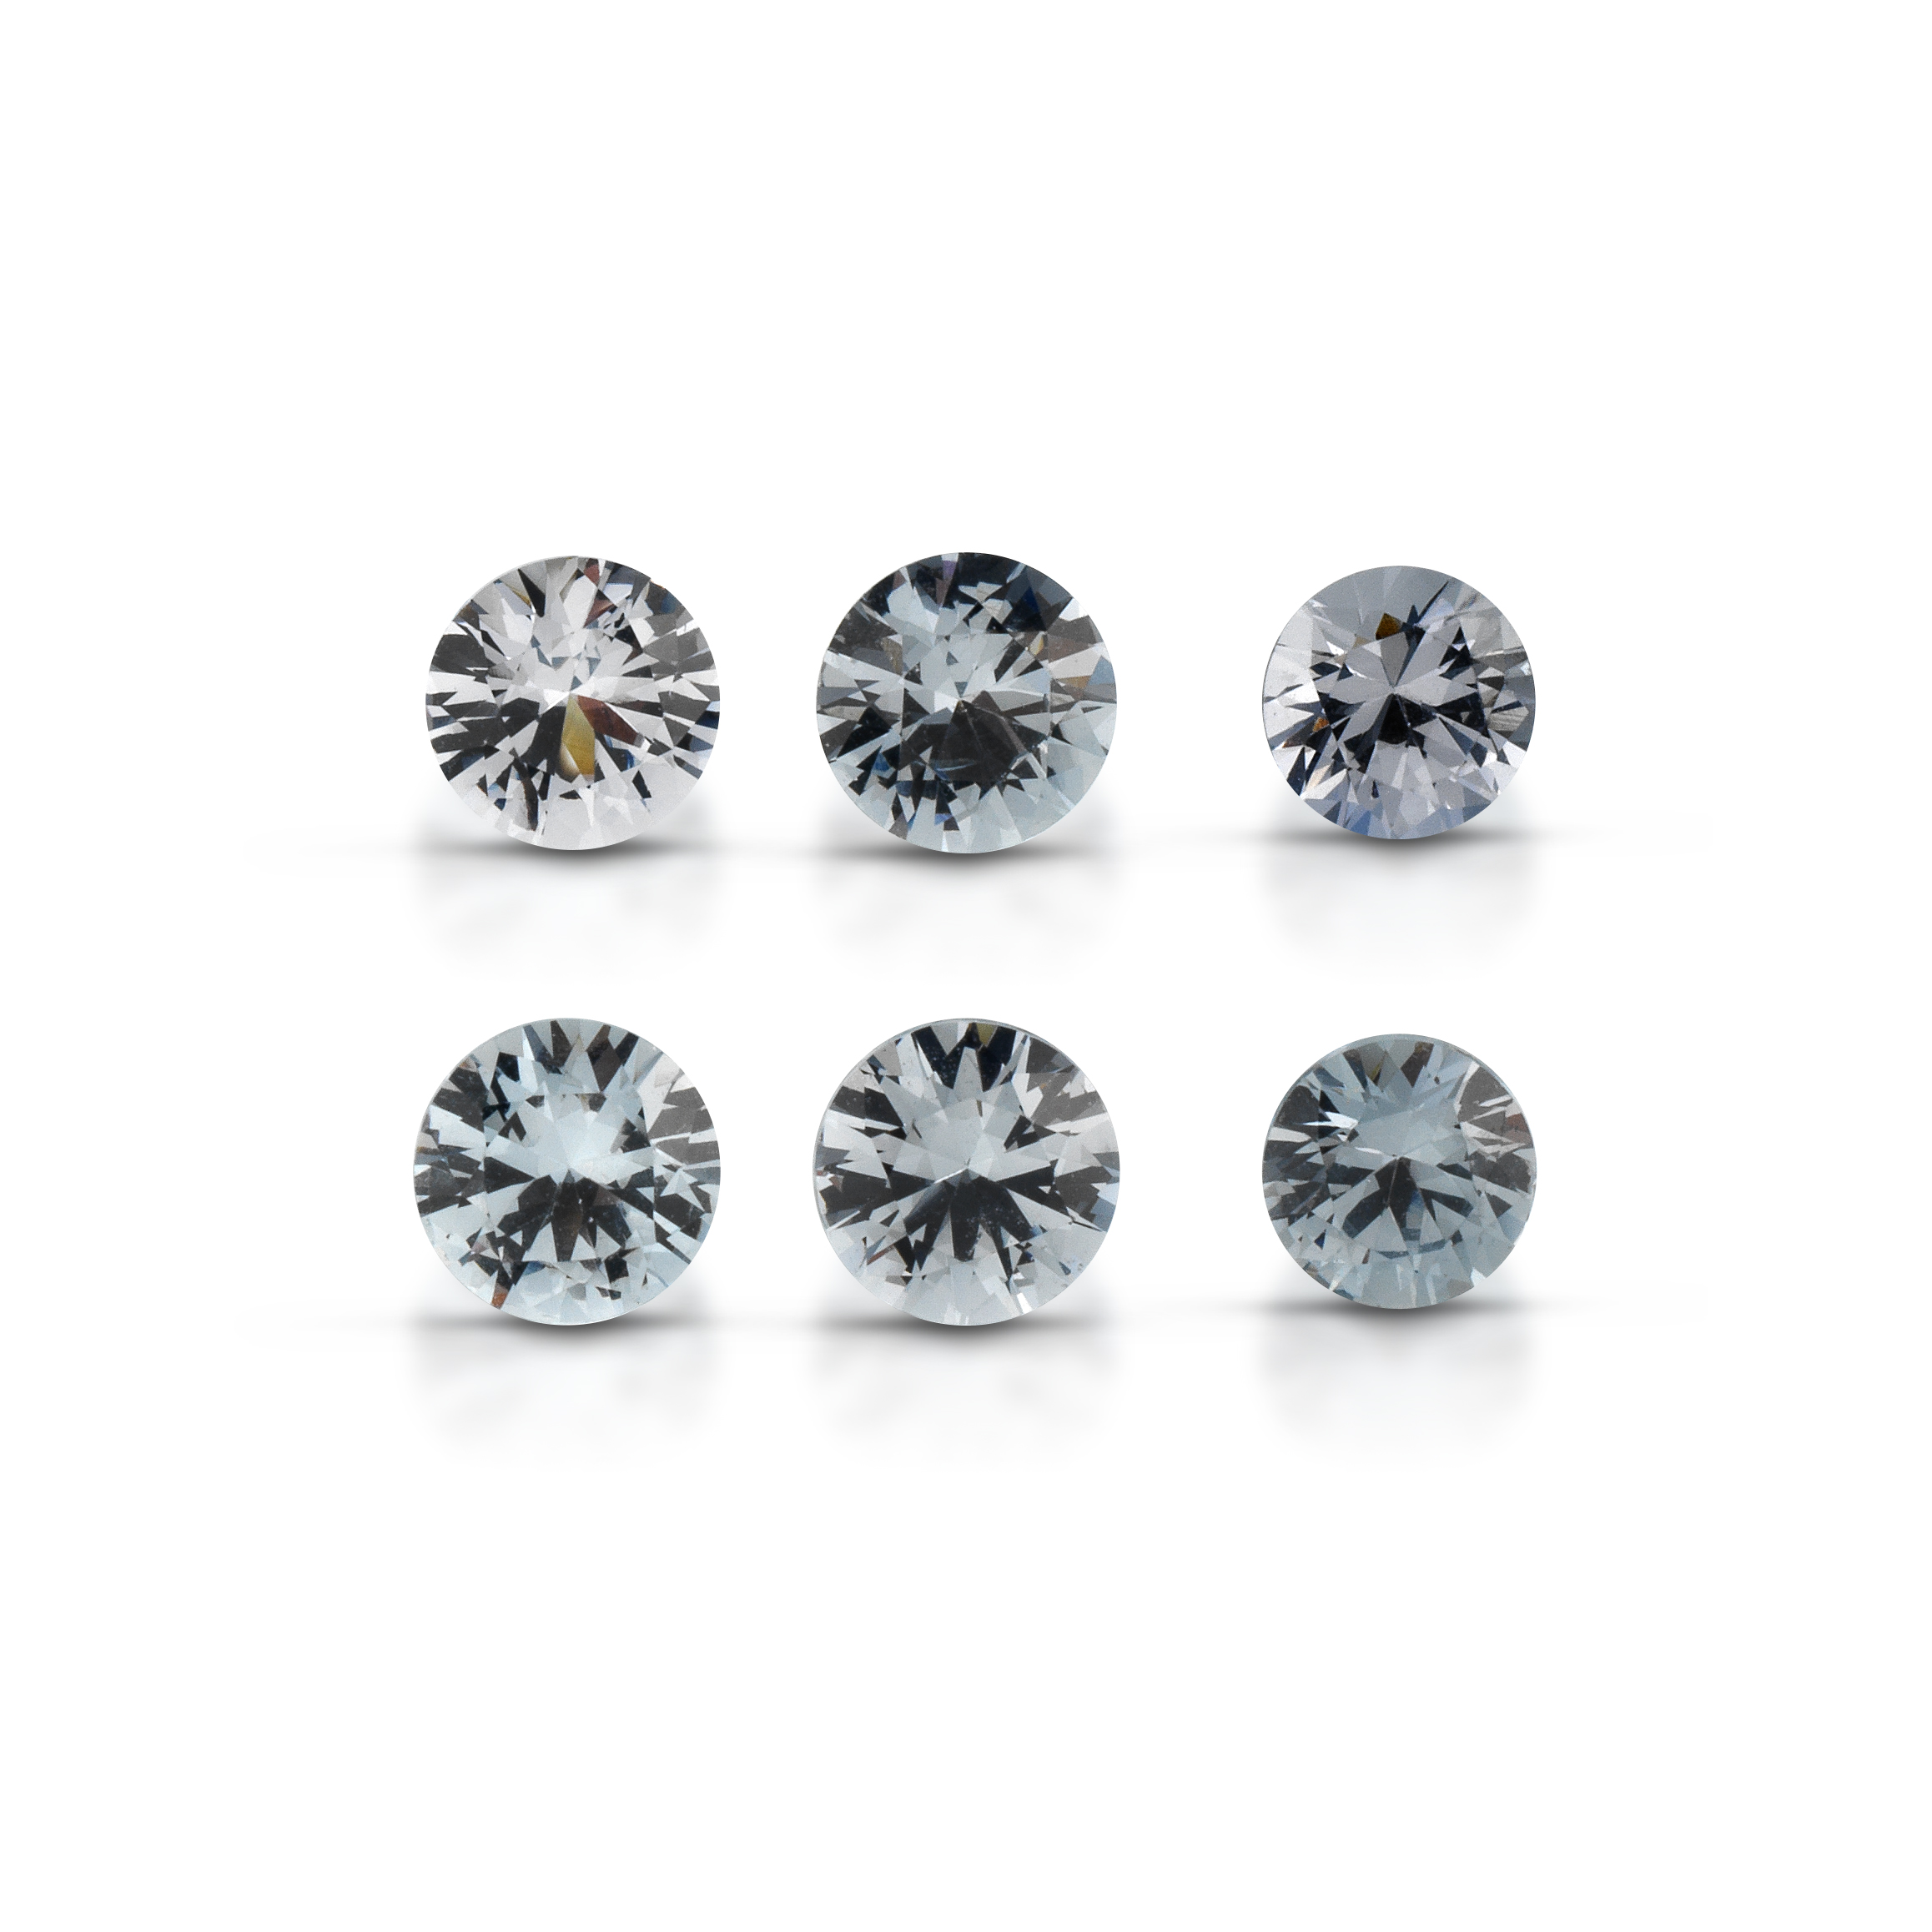 ClaudiaHamann_Spinel_Tanzania_Round_BrilliantCut2